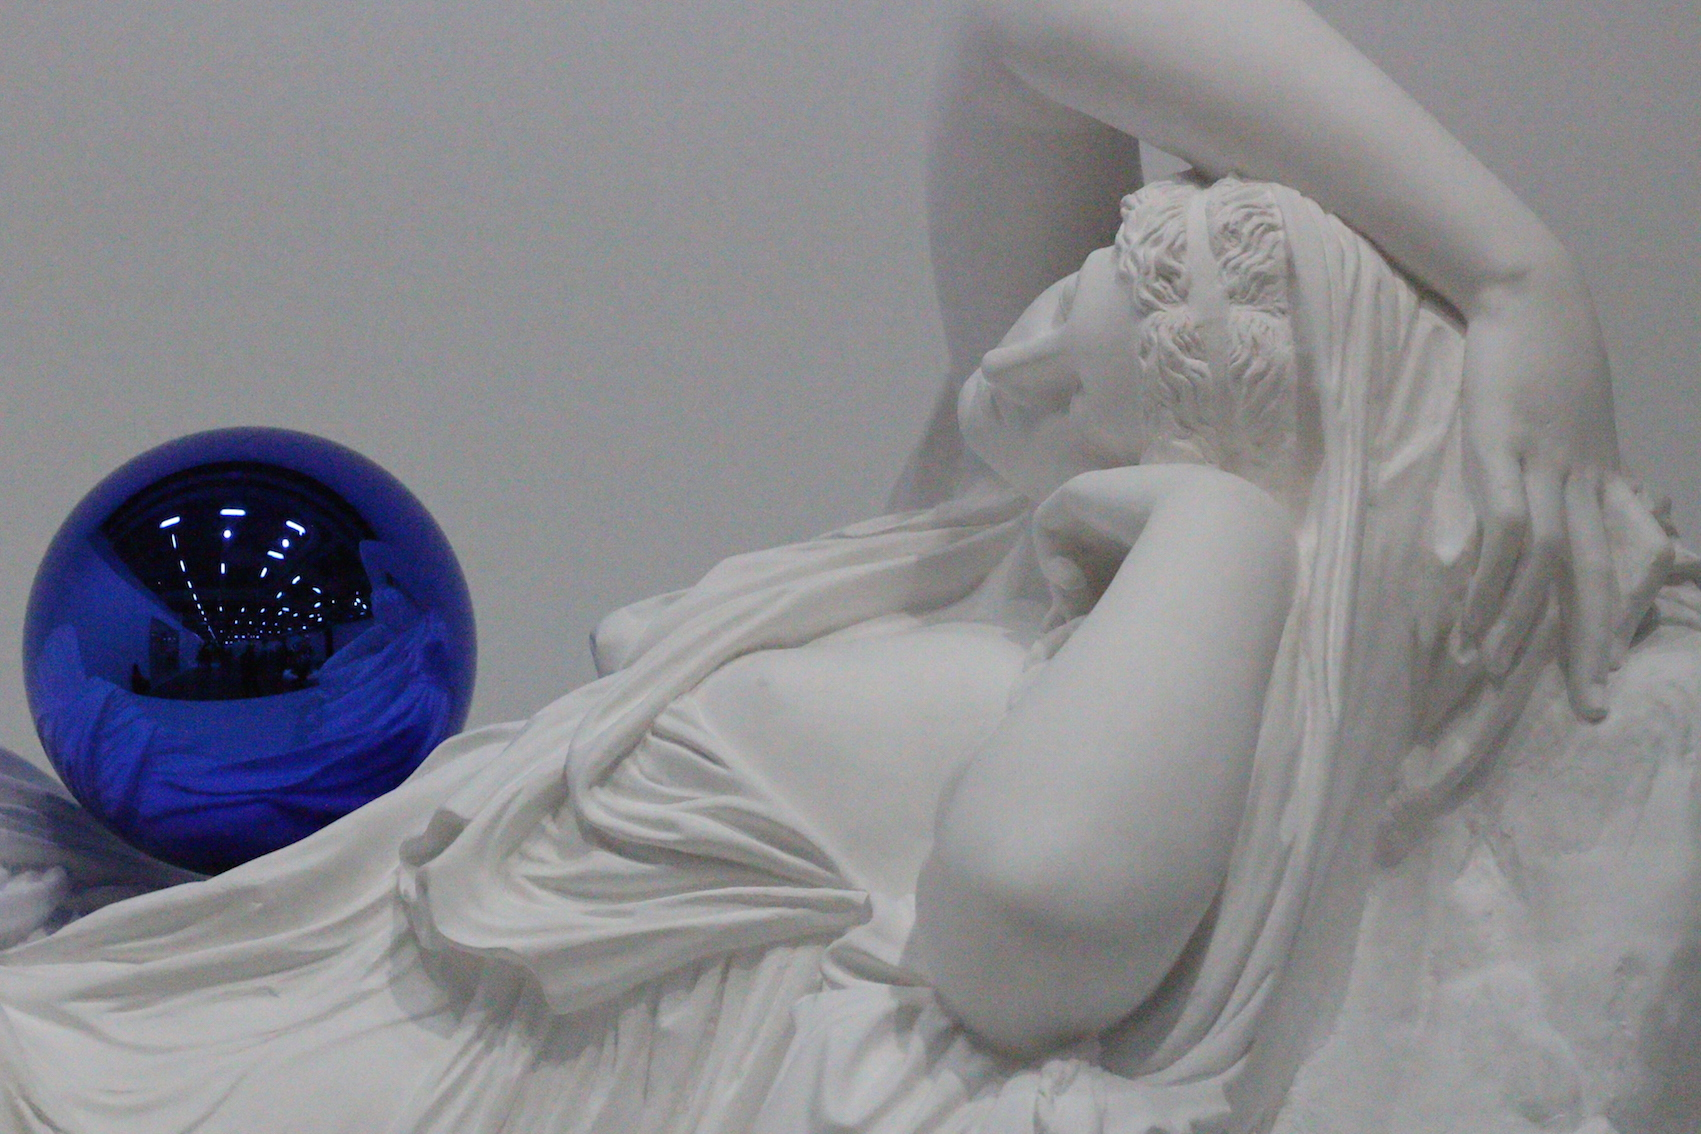 Gazing at Koons